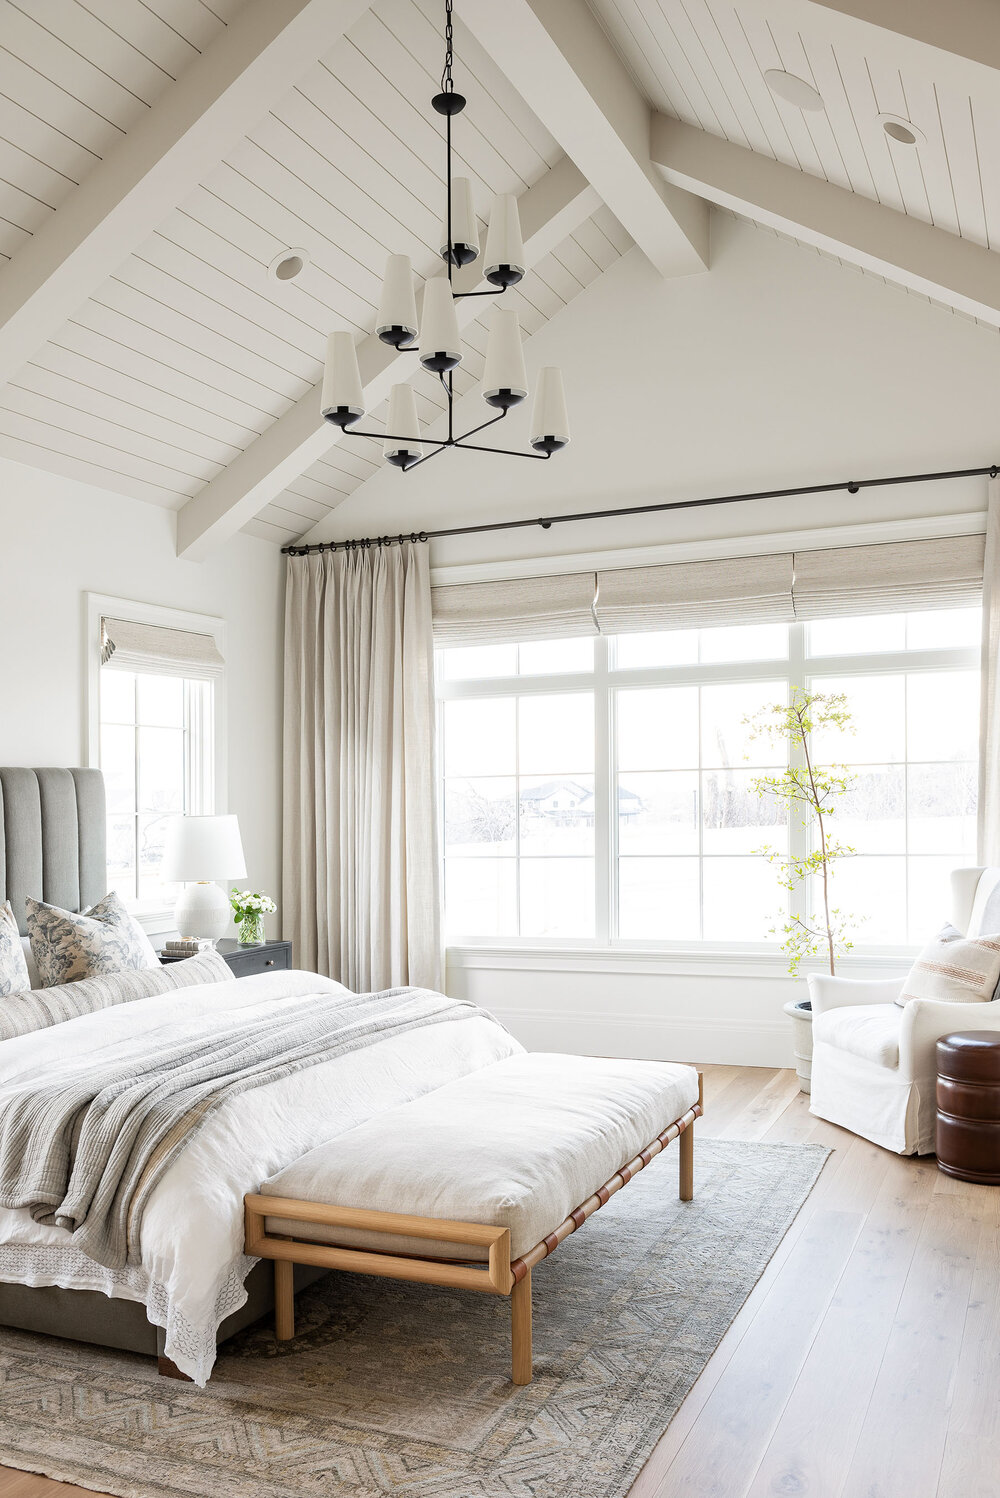 The McGee Home: Master Bedroom Photo Tour